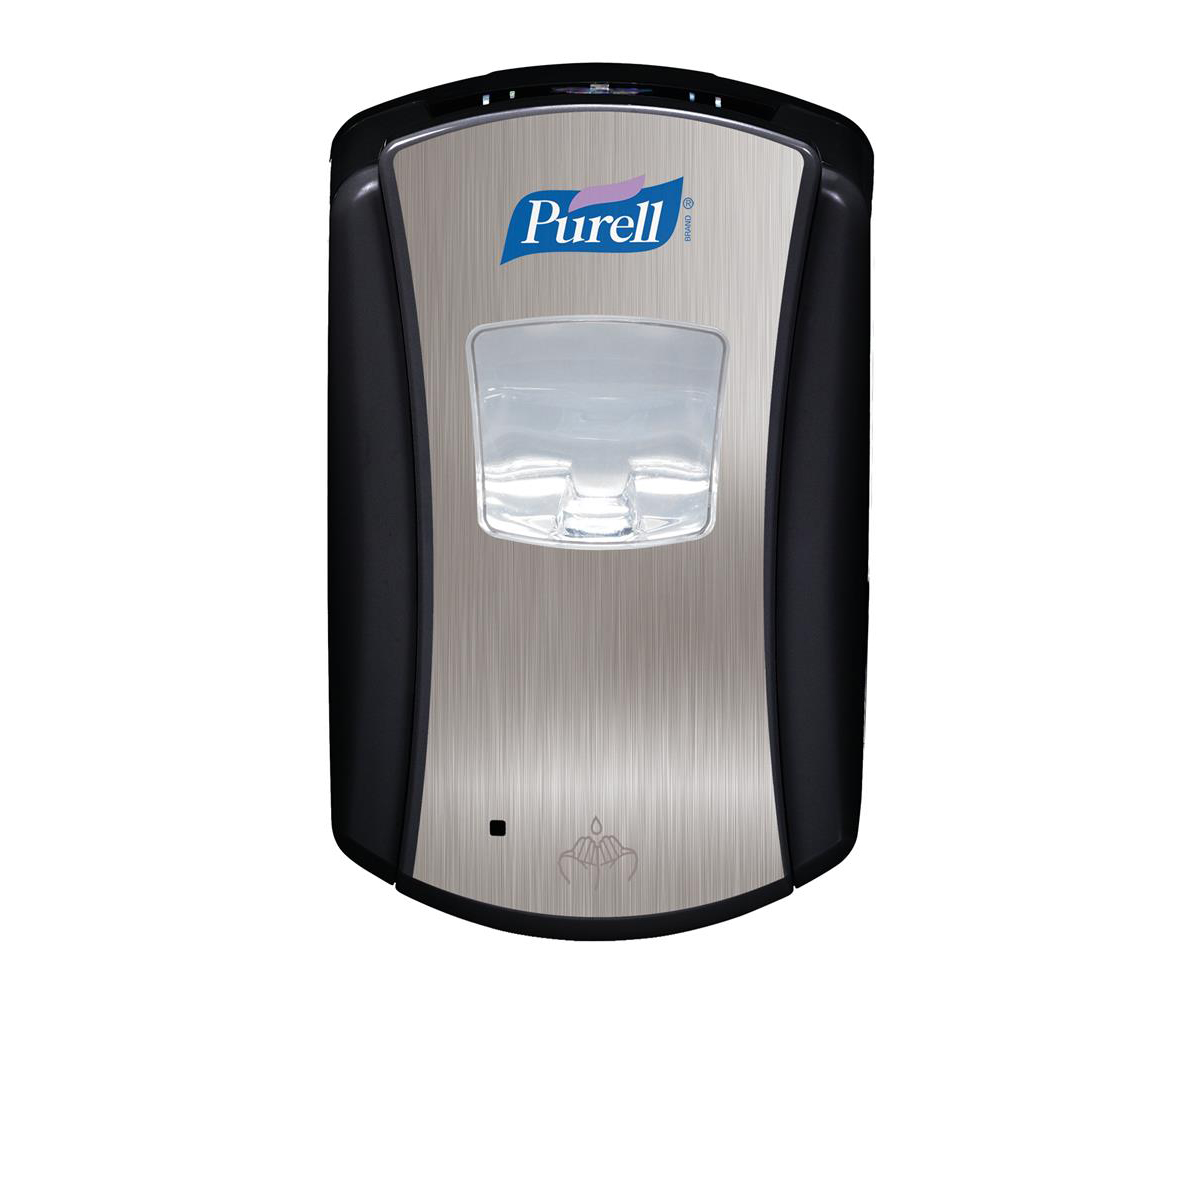 Purell Touch Free Hand Rub Dispenser LTX-7 700ml Chrome & Black Ref X01163